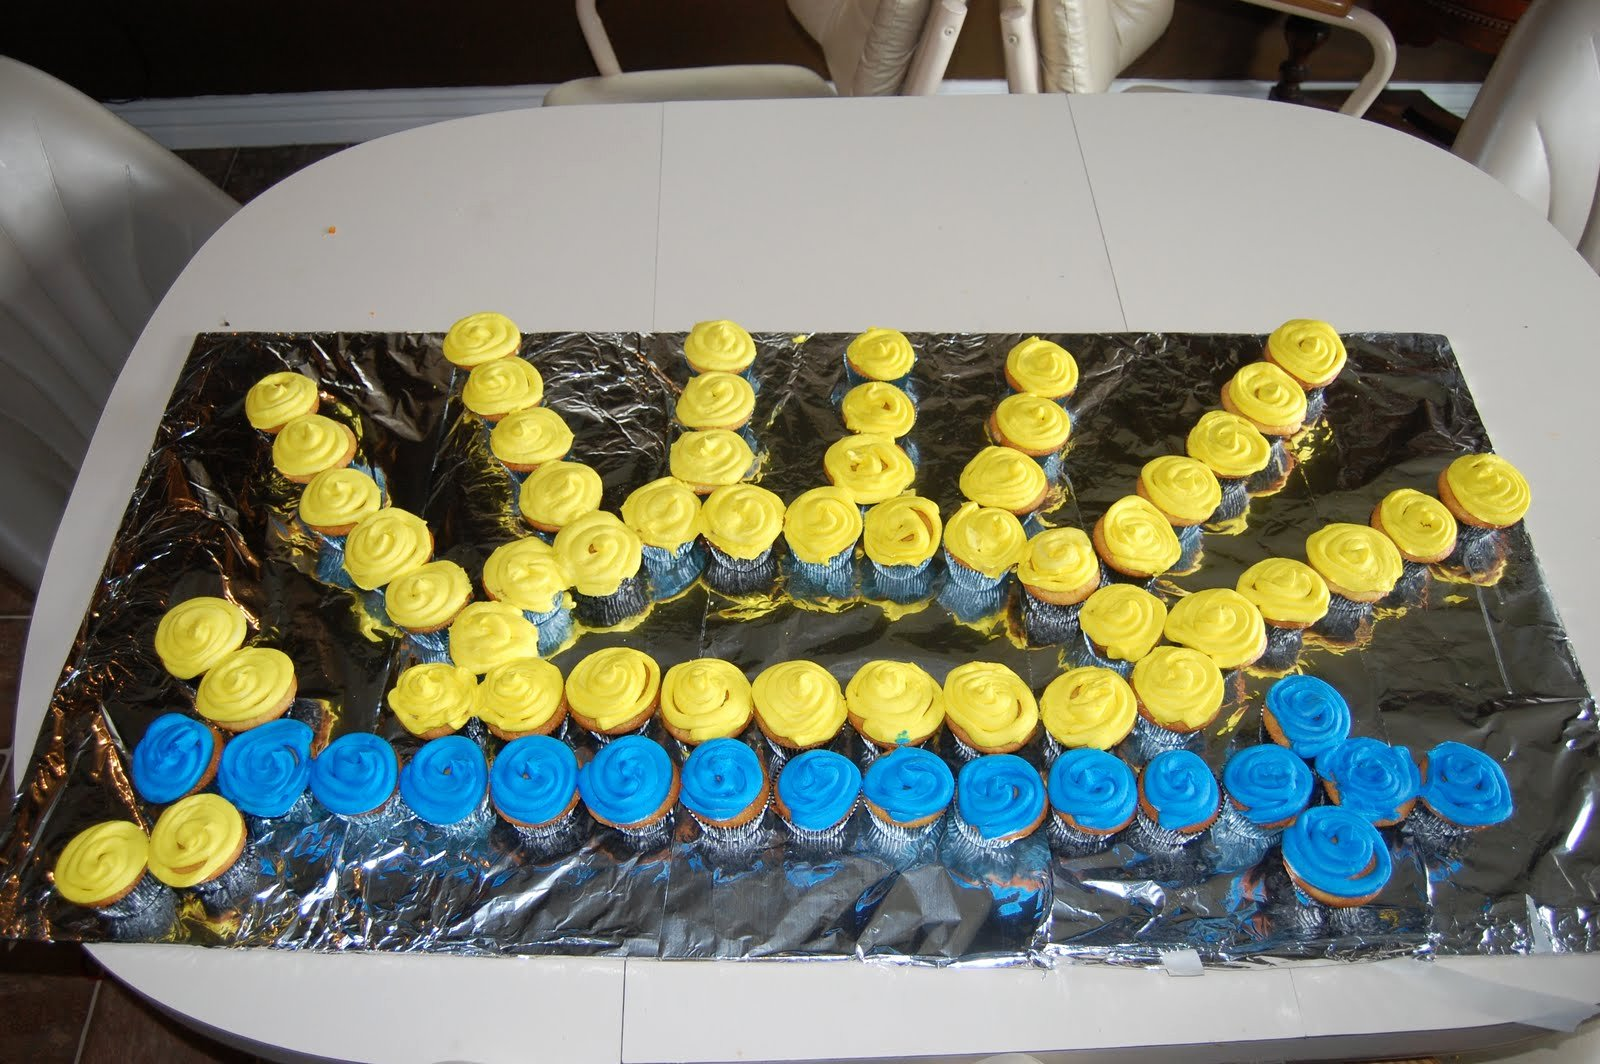 Simple Arrow Of Light Ceremony Ideas Inspirational Pony Express District Cub Scouts Blue and Gold Table